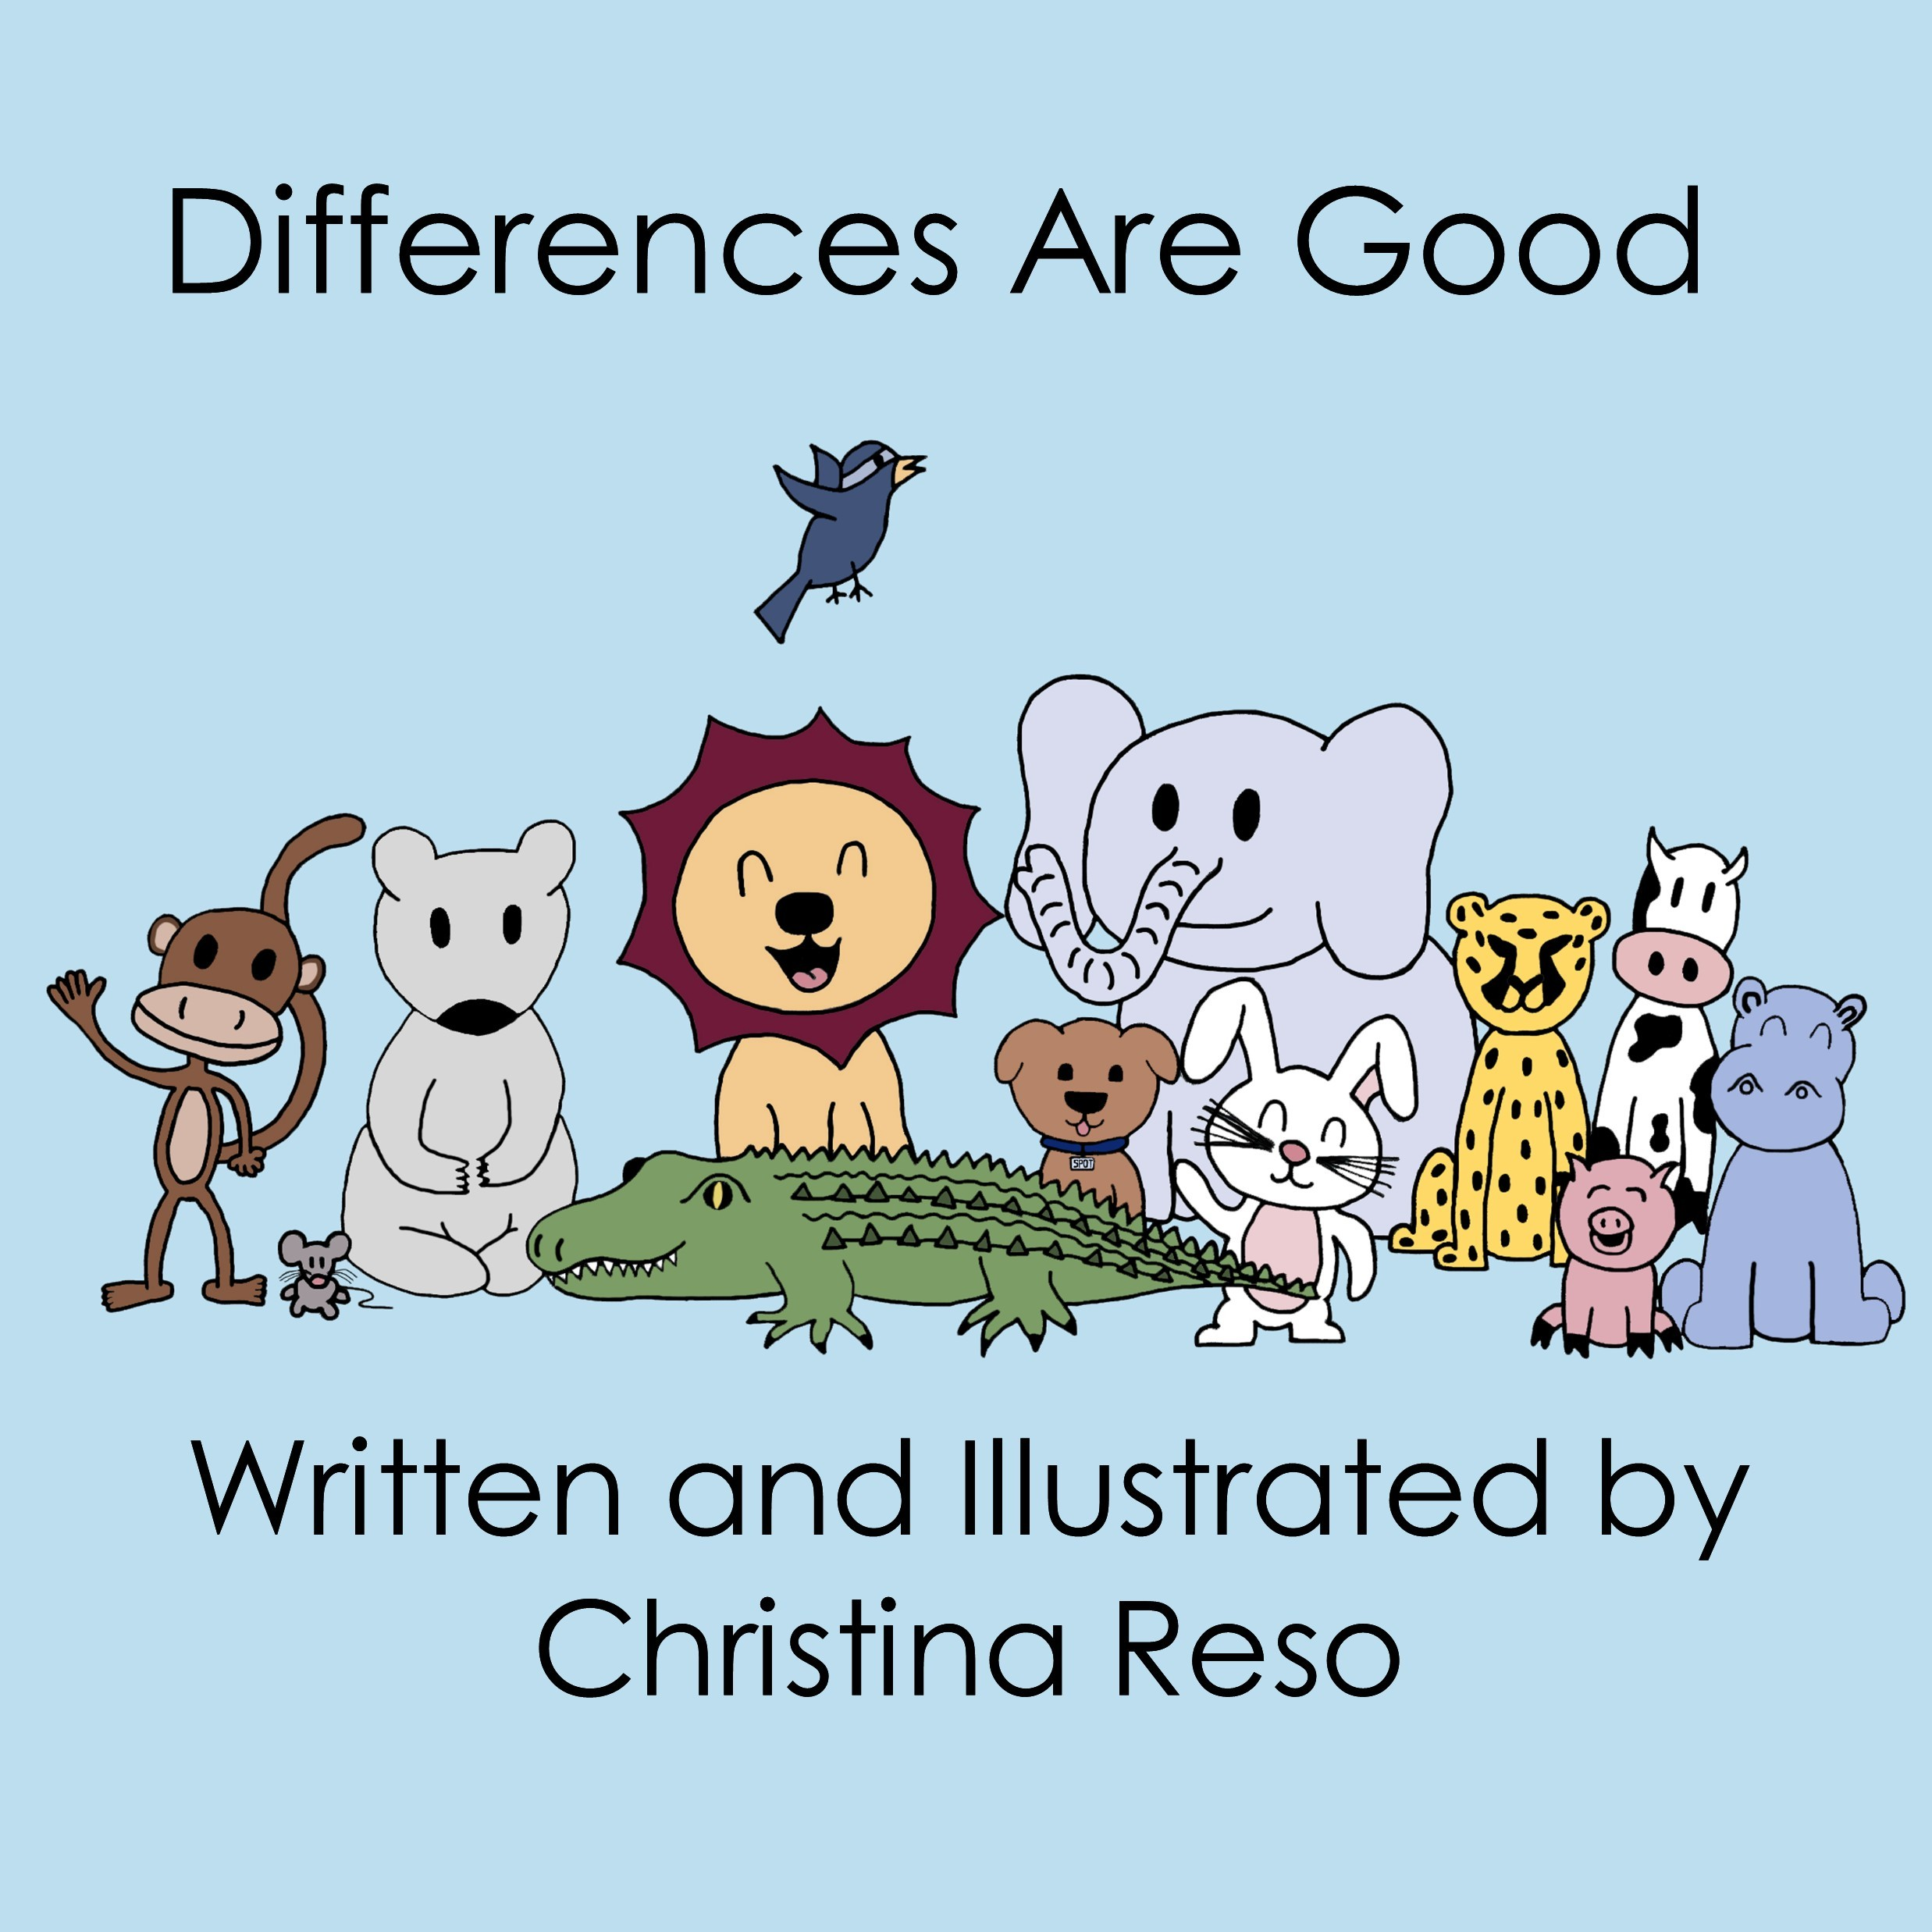 Differences Are Good Christina Reso